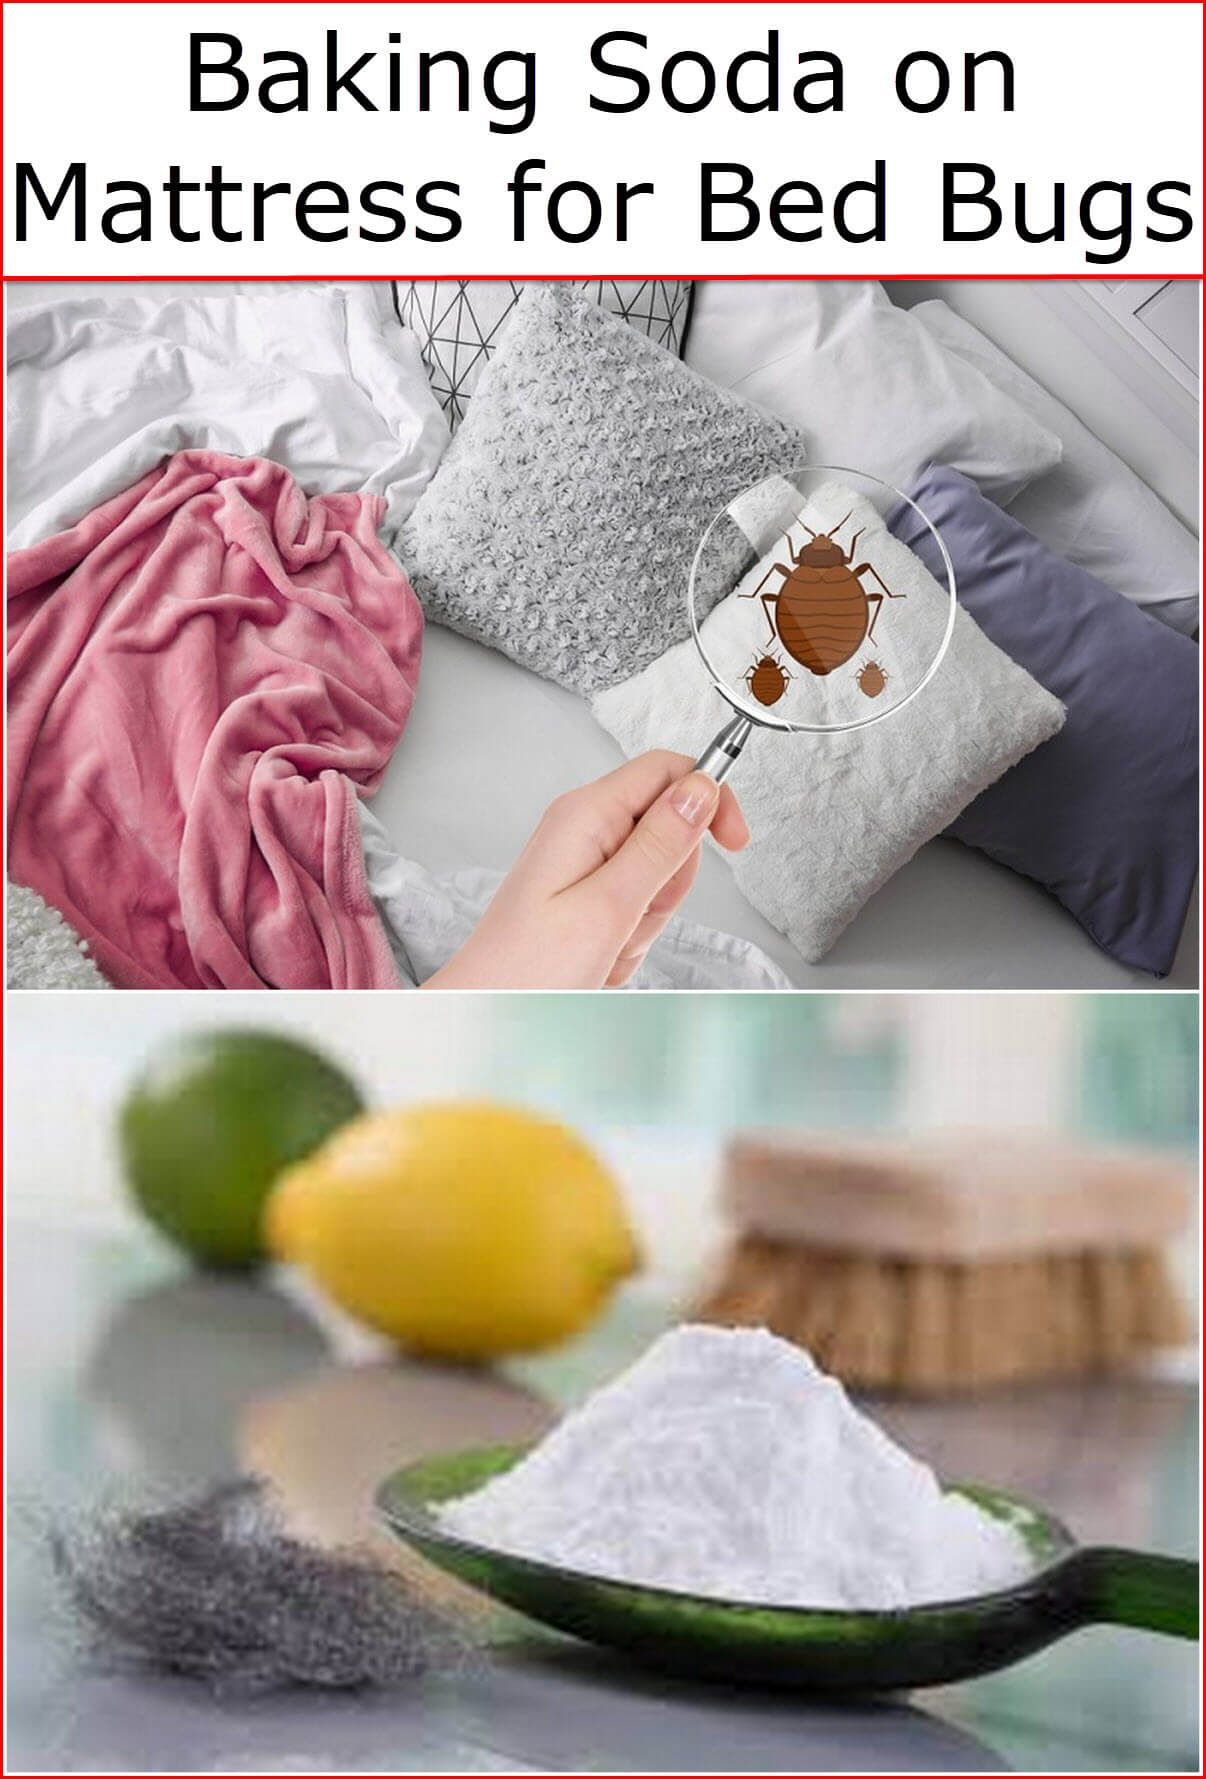 a057a031595 Baking soda works effectively to kill bedbugs